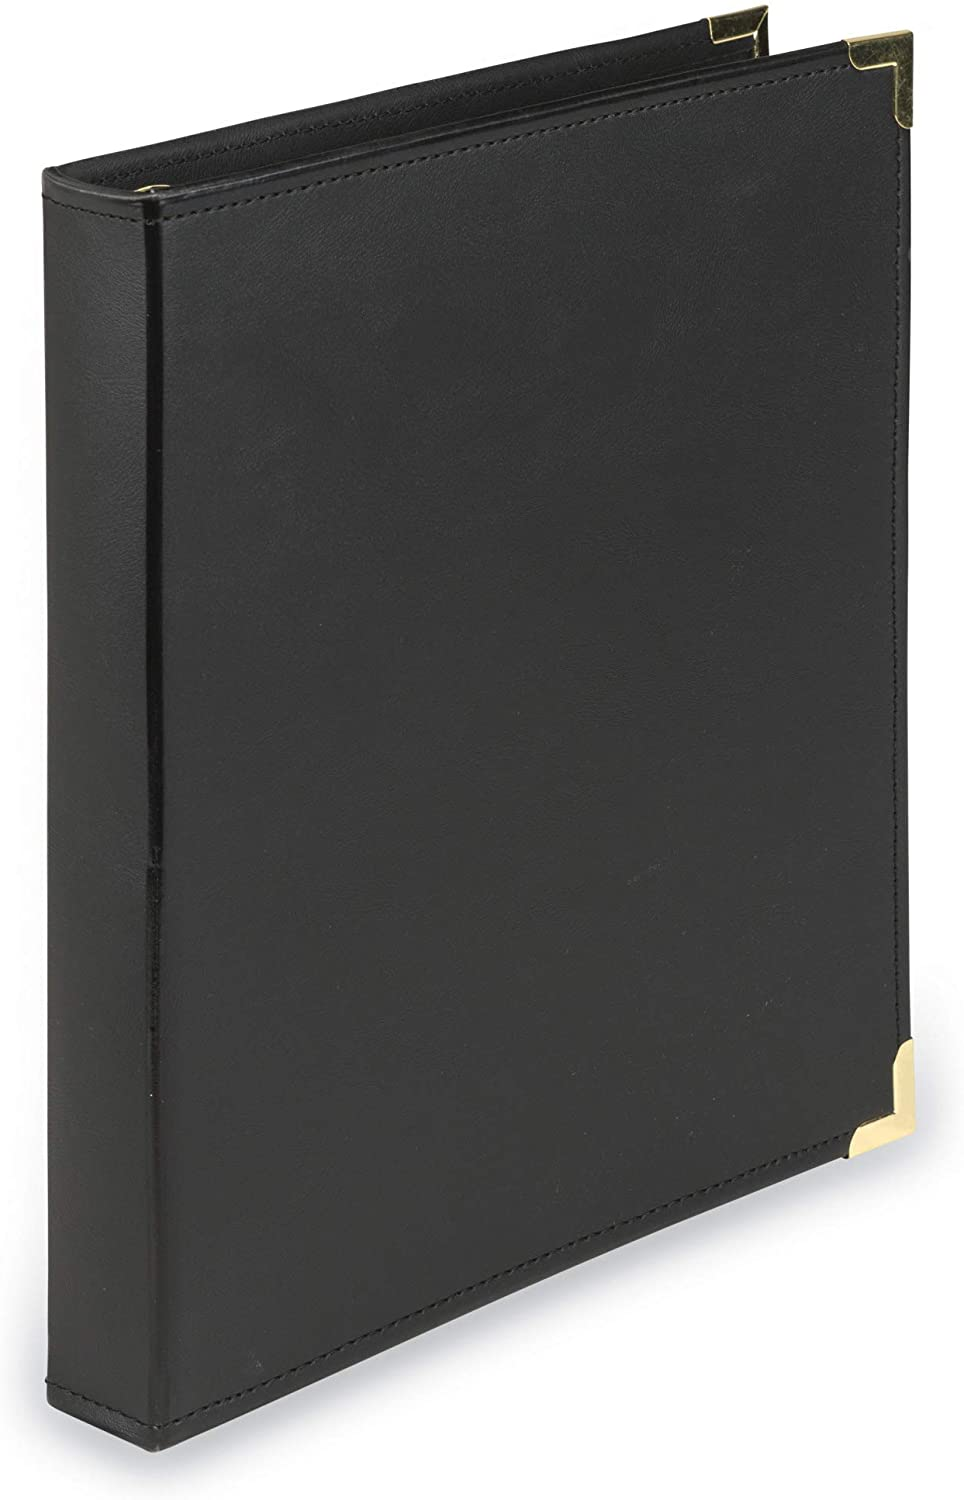 Samsill Classic Collection Executive Presentation 3 Ring Binder